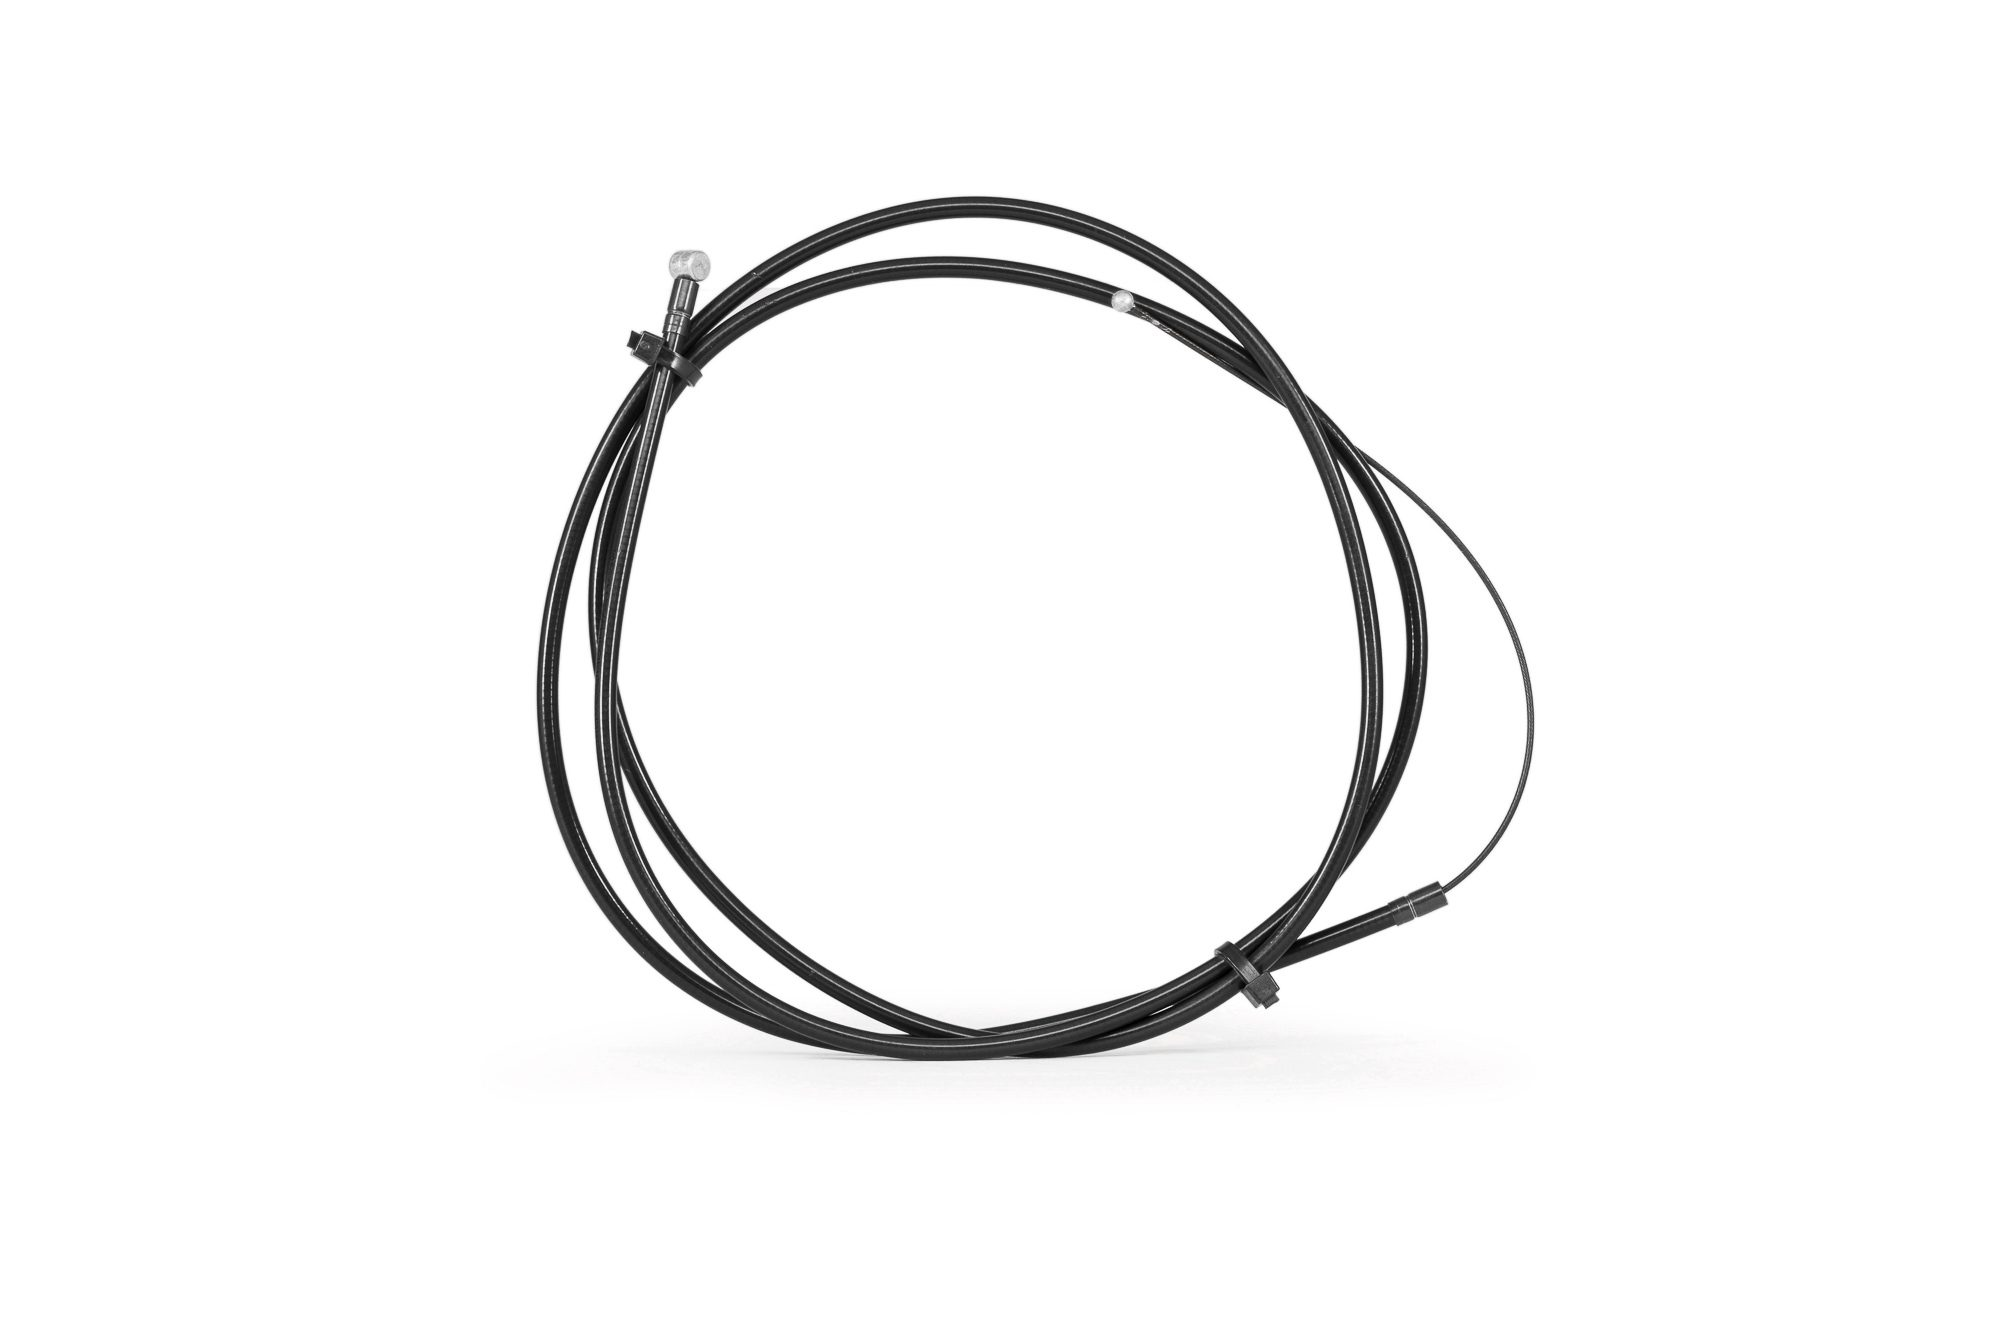 Salt_AM_brake_cable_black_01